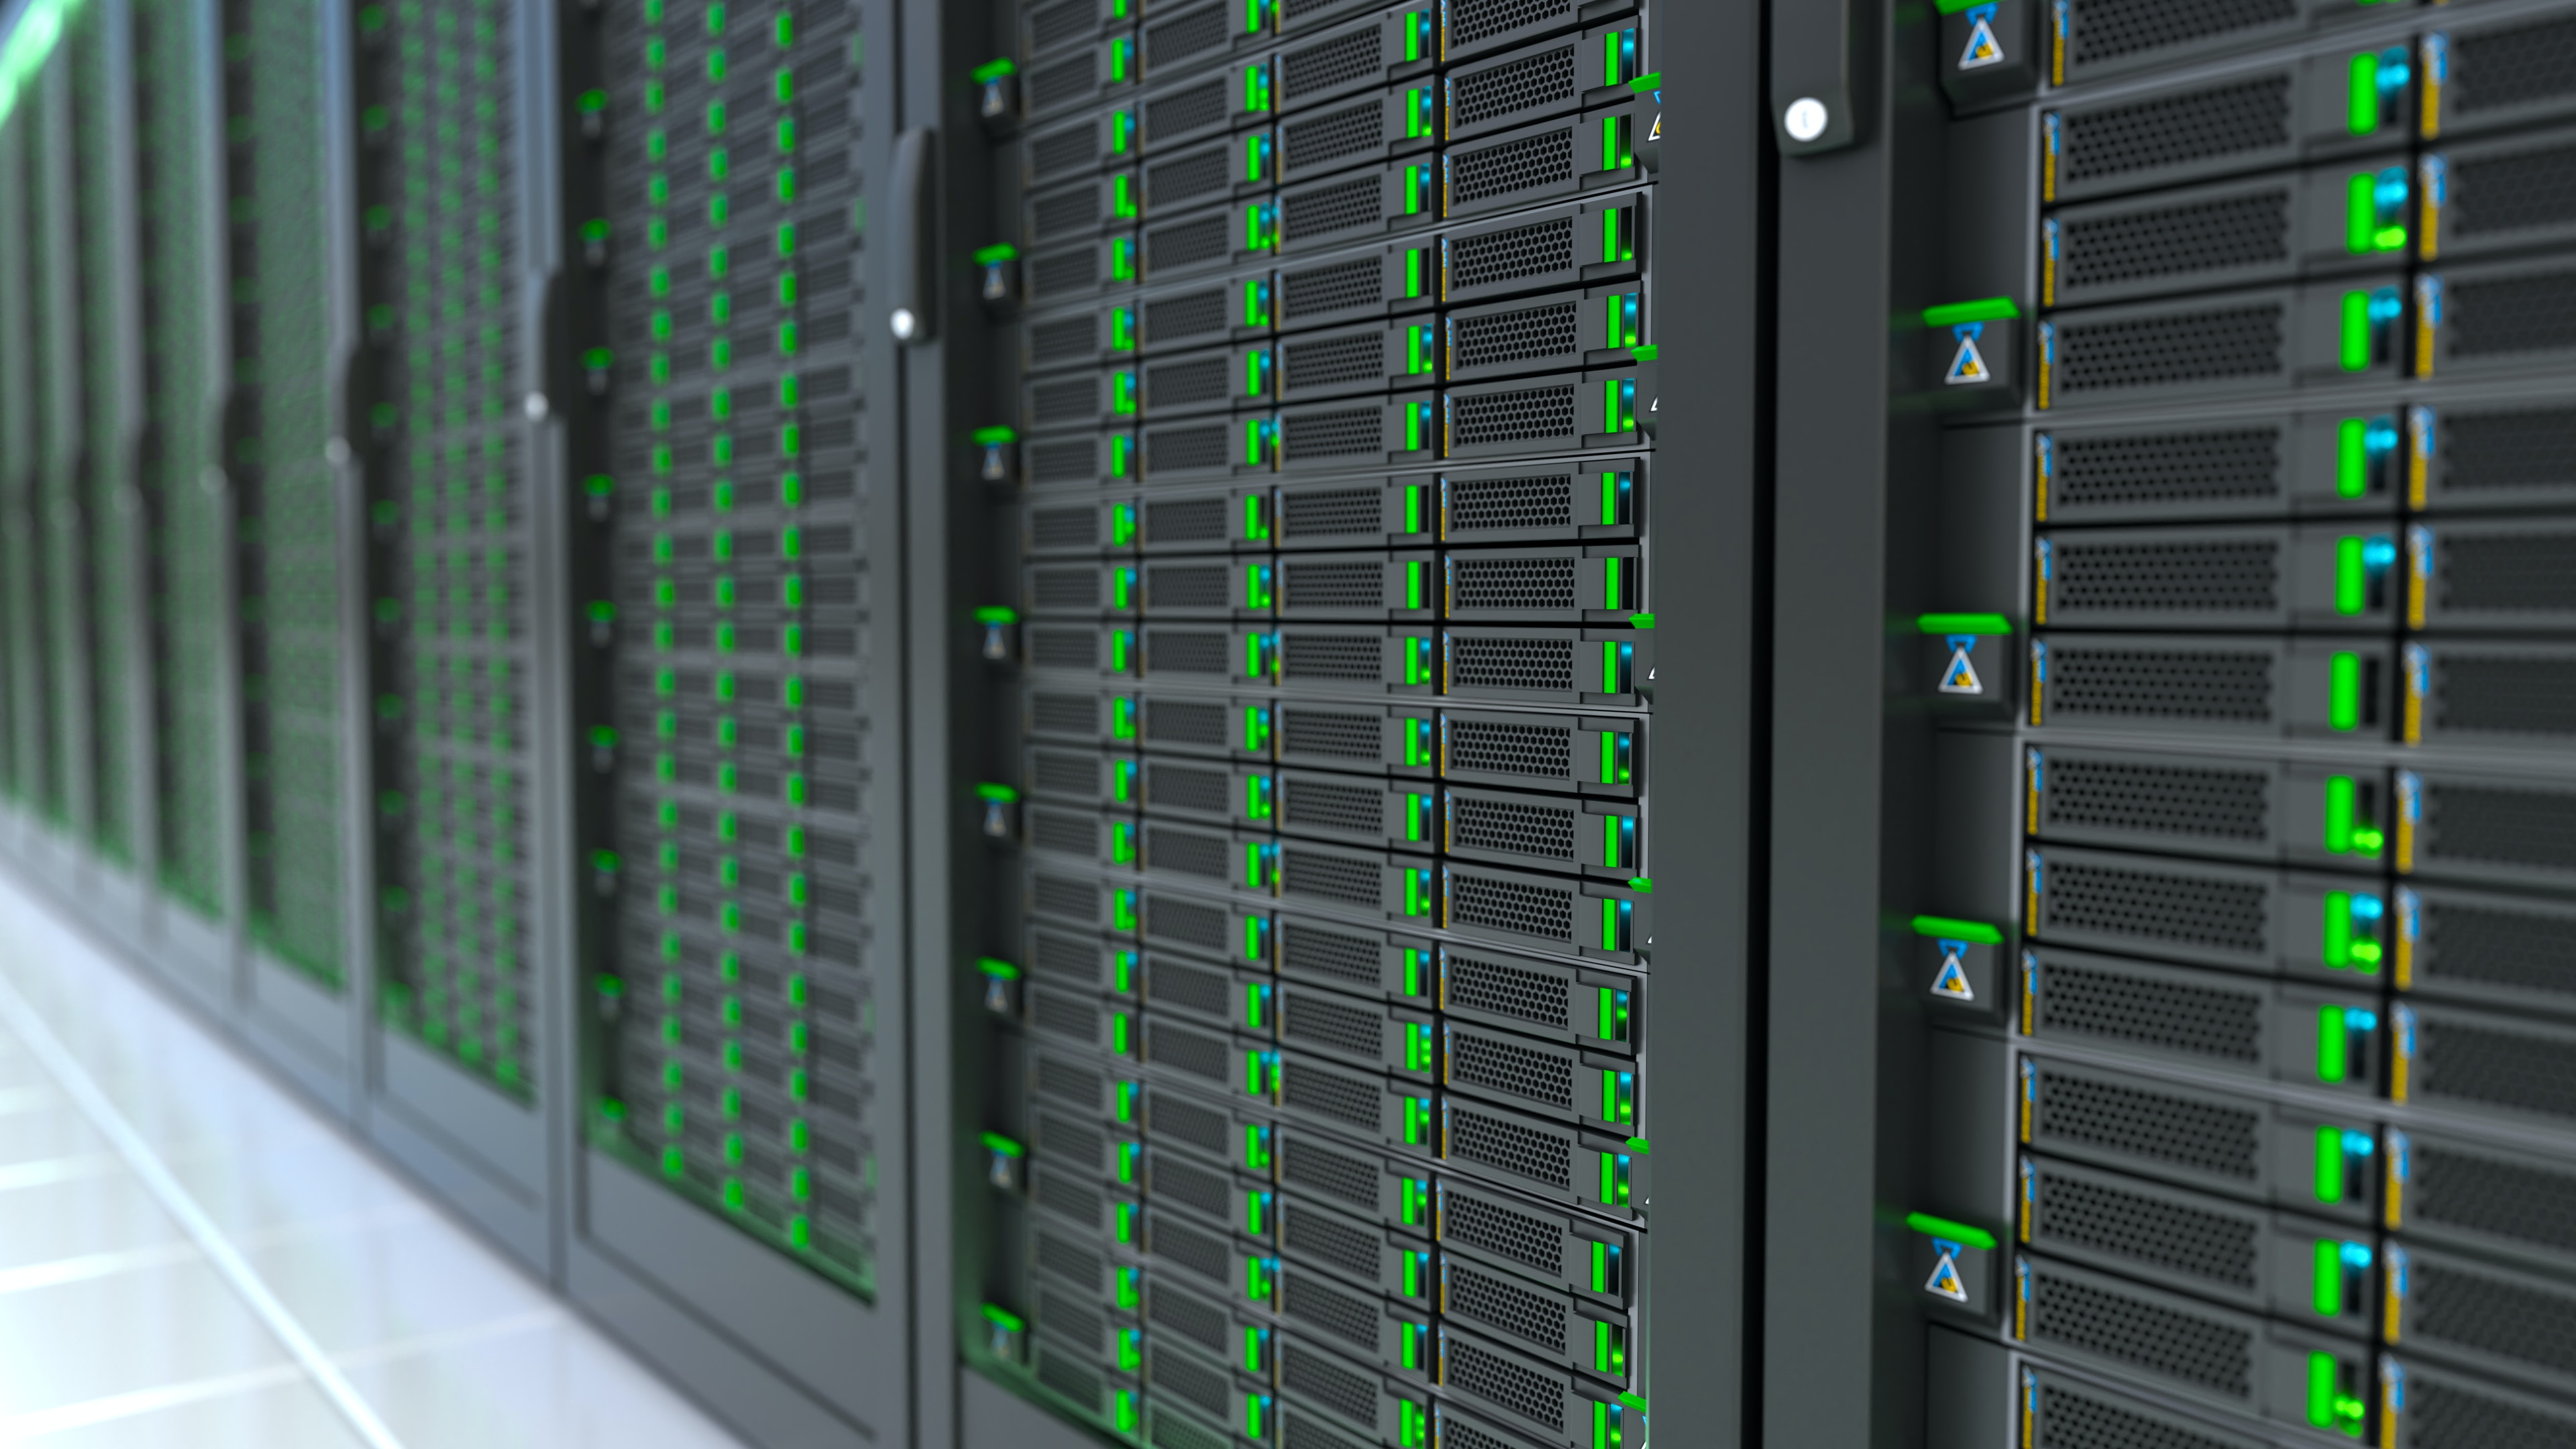 Will you buy and maintain your own server farm, or offload it to a cloud provider?